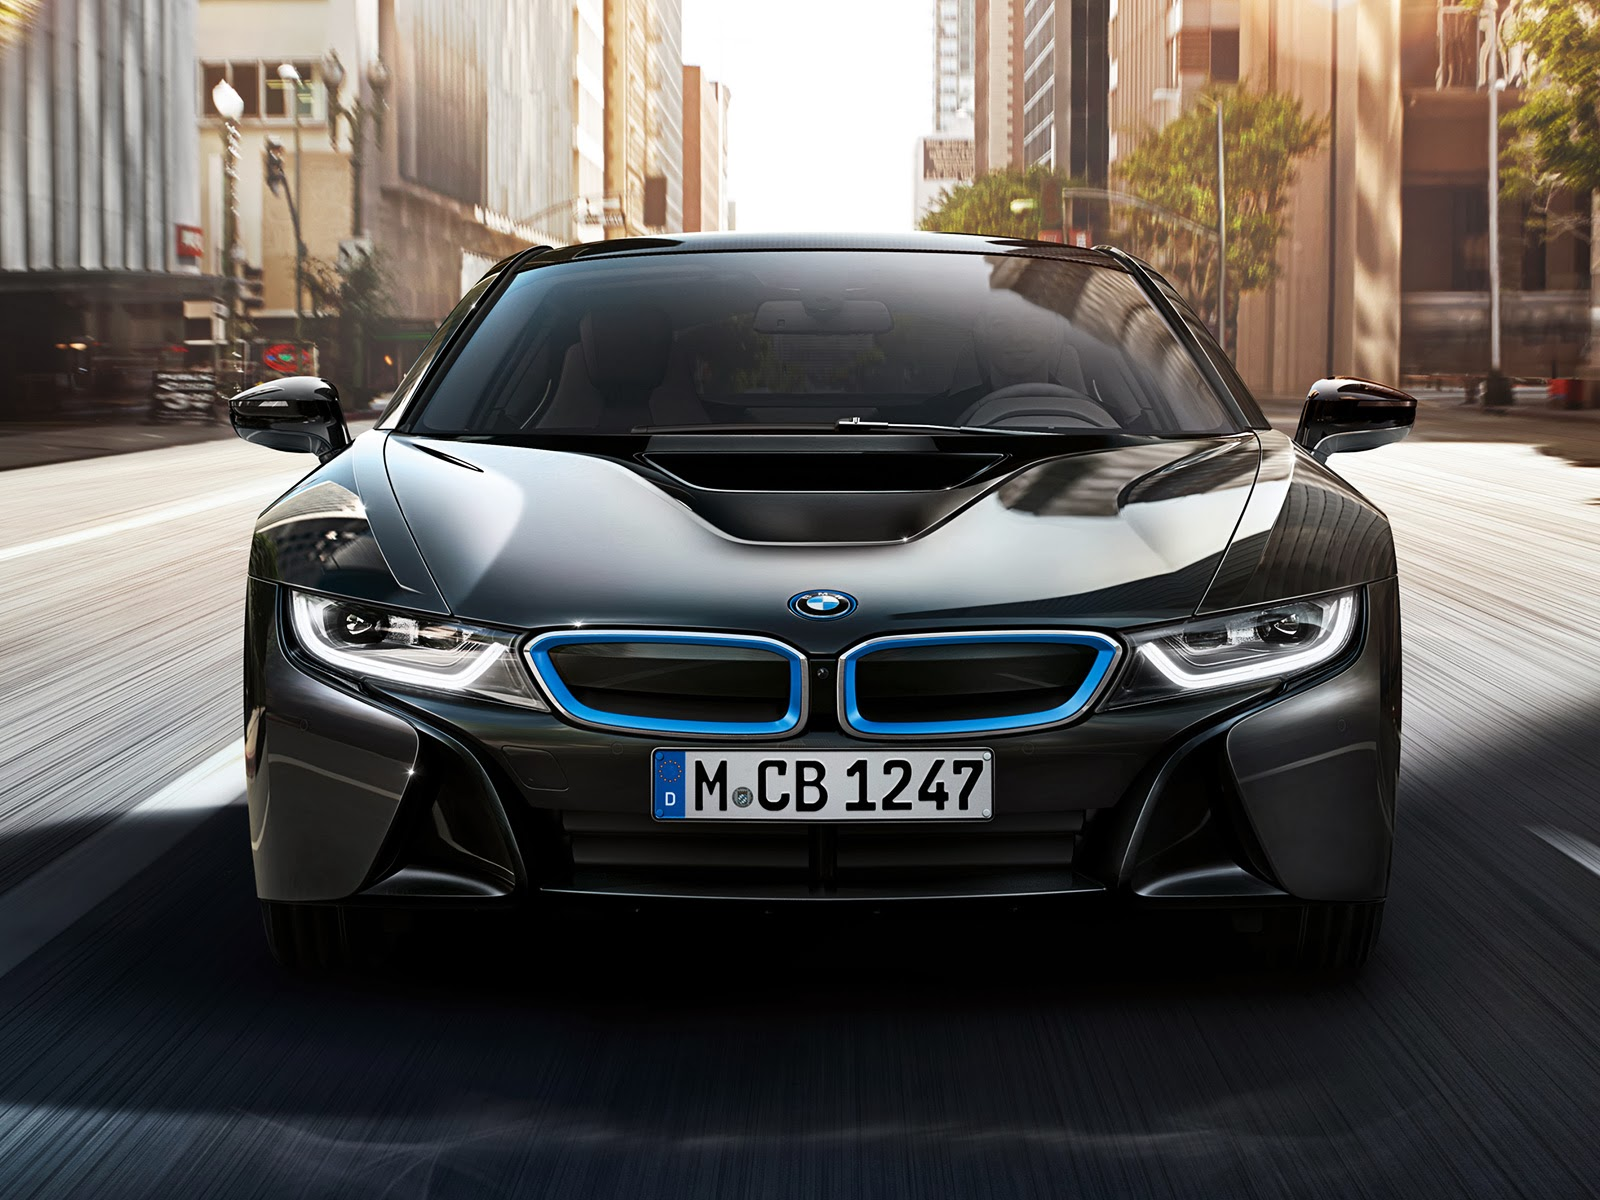 Bmw I8 Wallpaper Iphone Www Groundcontroltrading Com